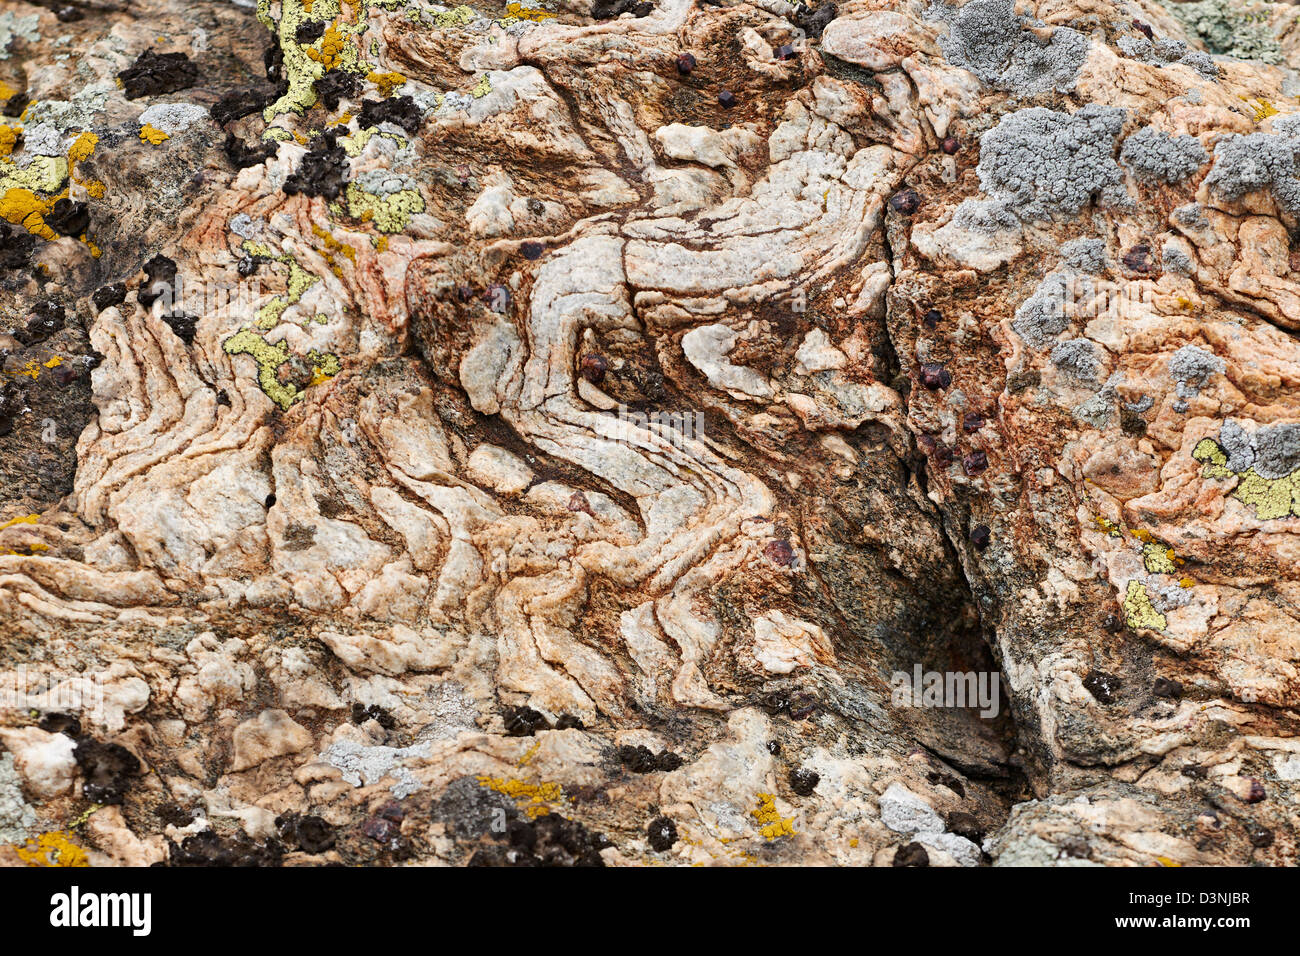 Magma rock with garnet crystals on land surface - Stock Image